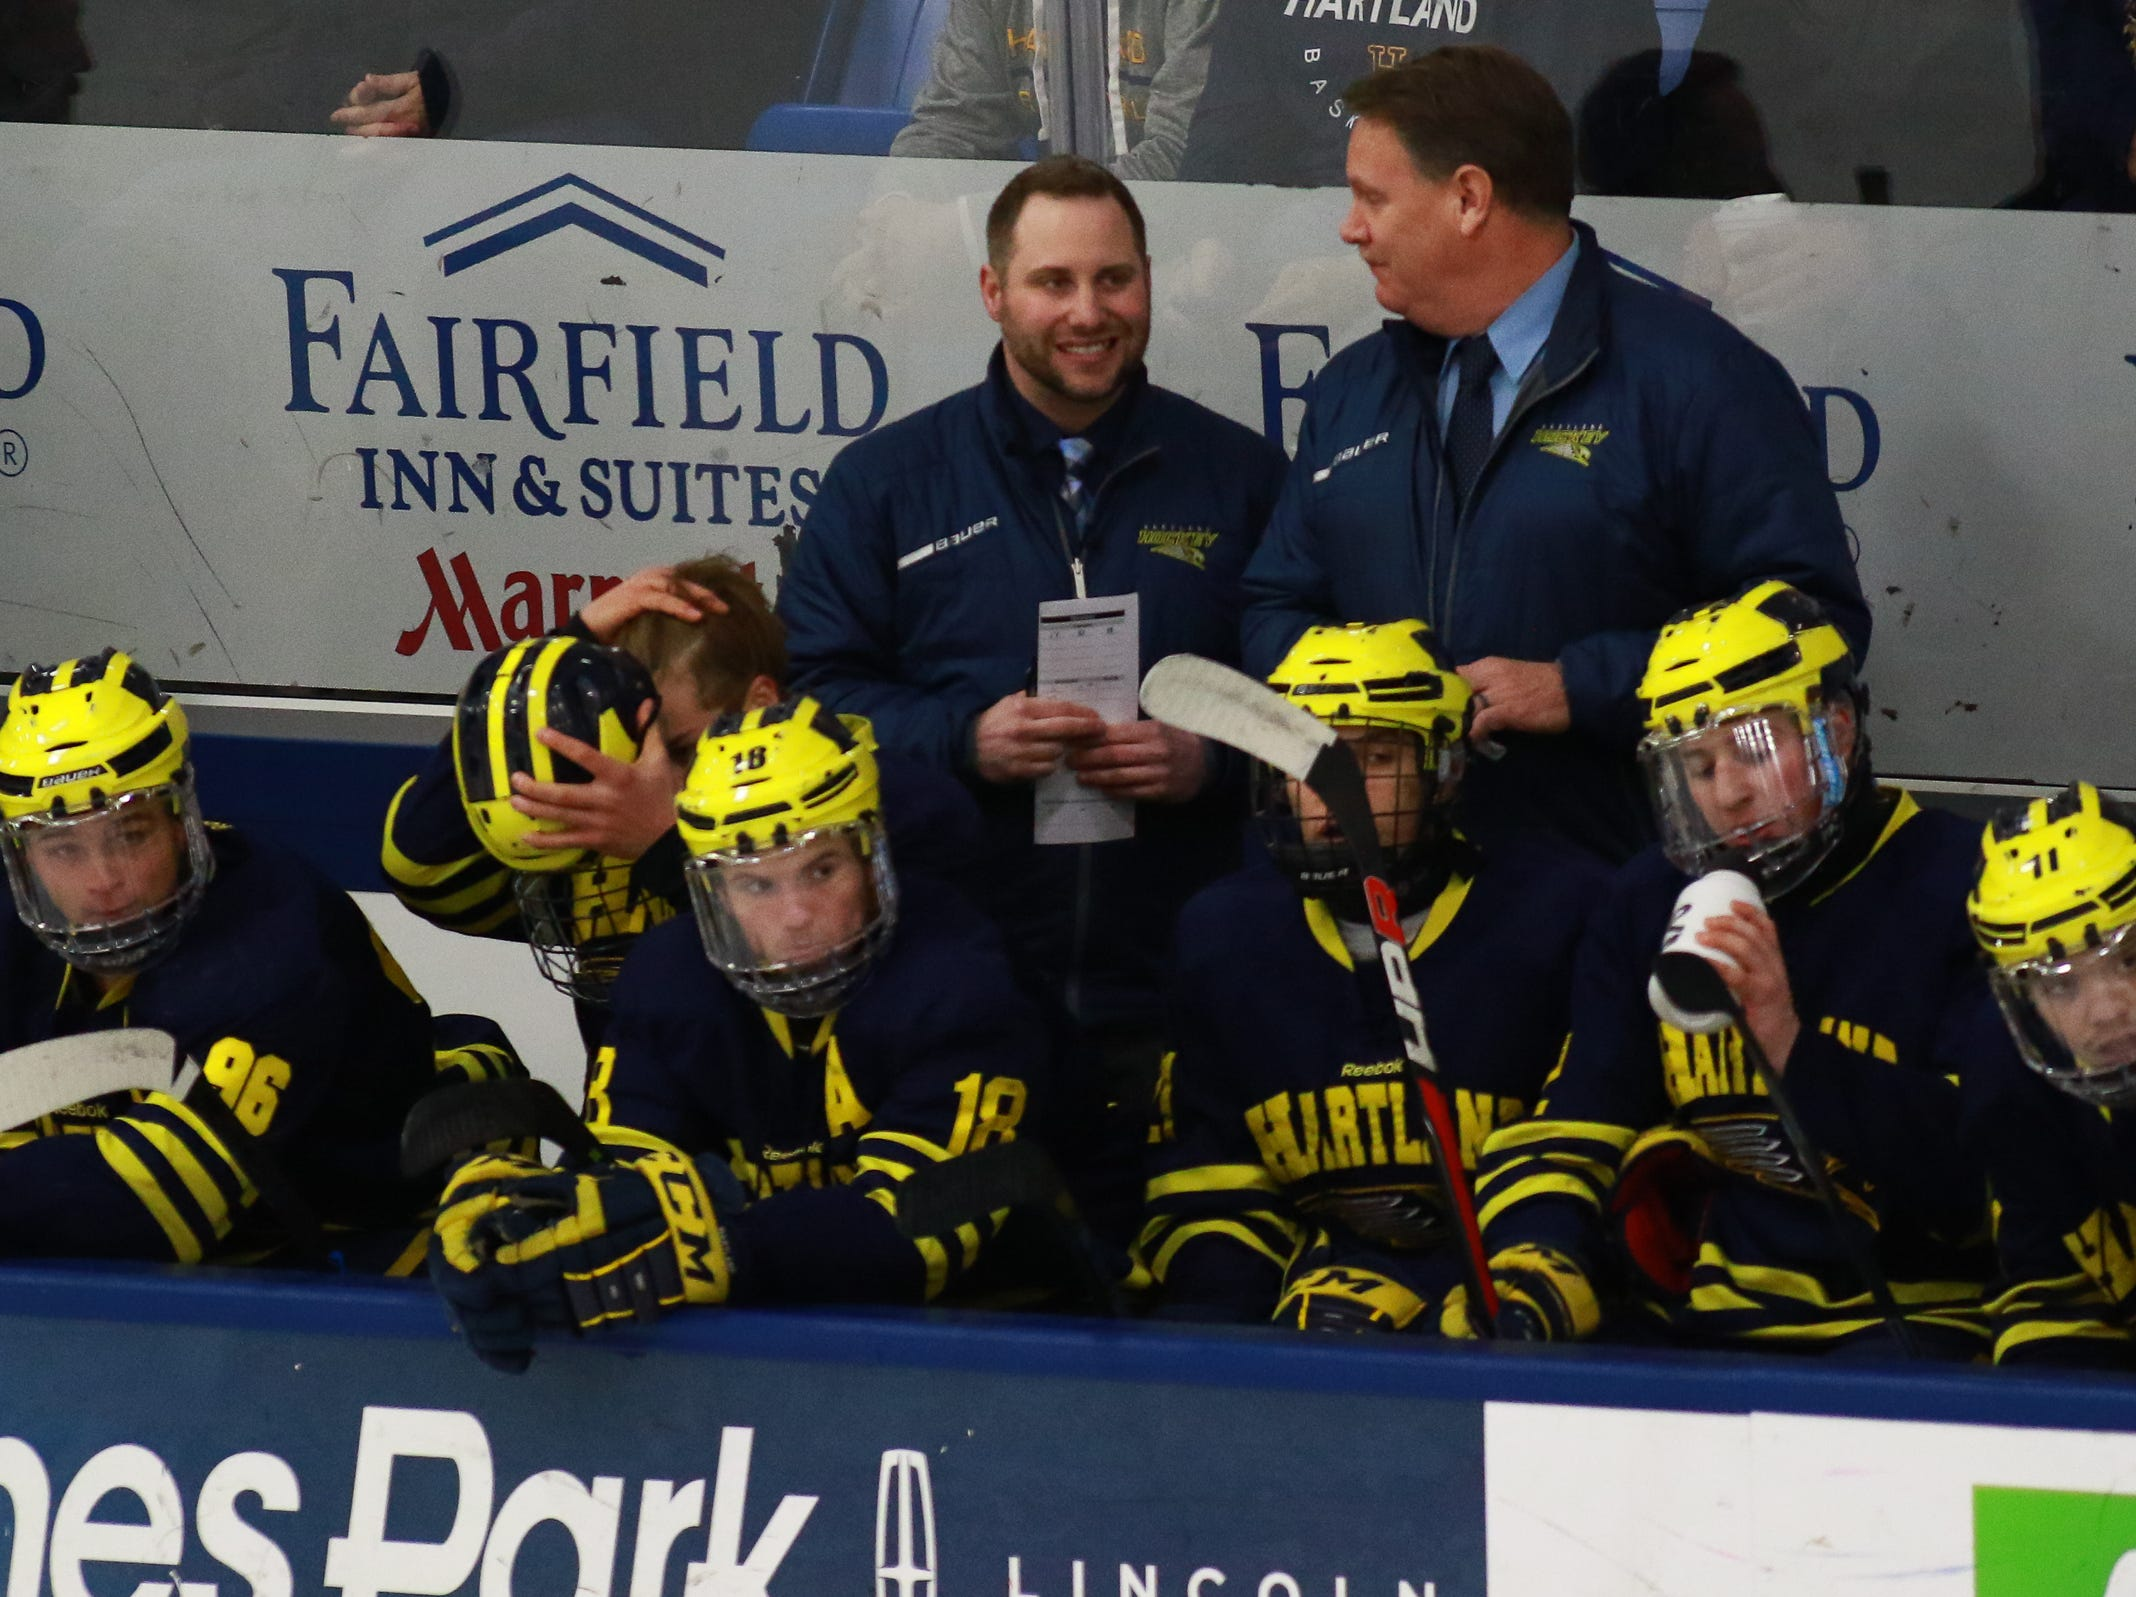 Hartland Rich Gadwa (left) smiles while talking with assistant coach John McCullough during a 4-0 victory over Trenton in the state Division 2 championship hockey game on Saturday, March 9, 2019 at USA Hockey Arena.